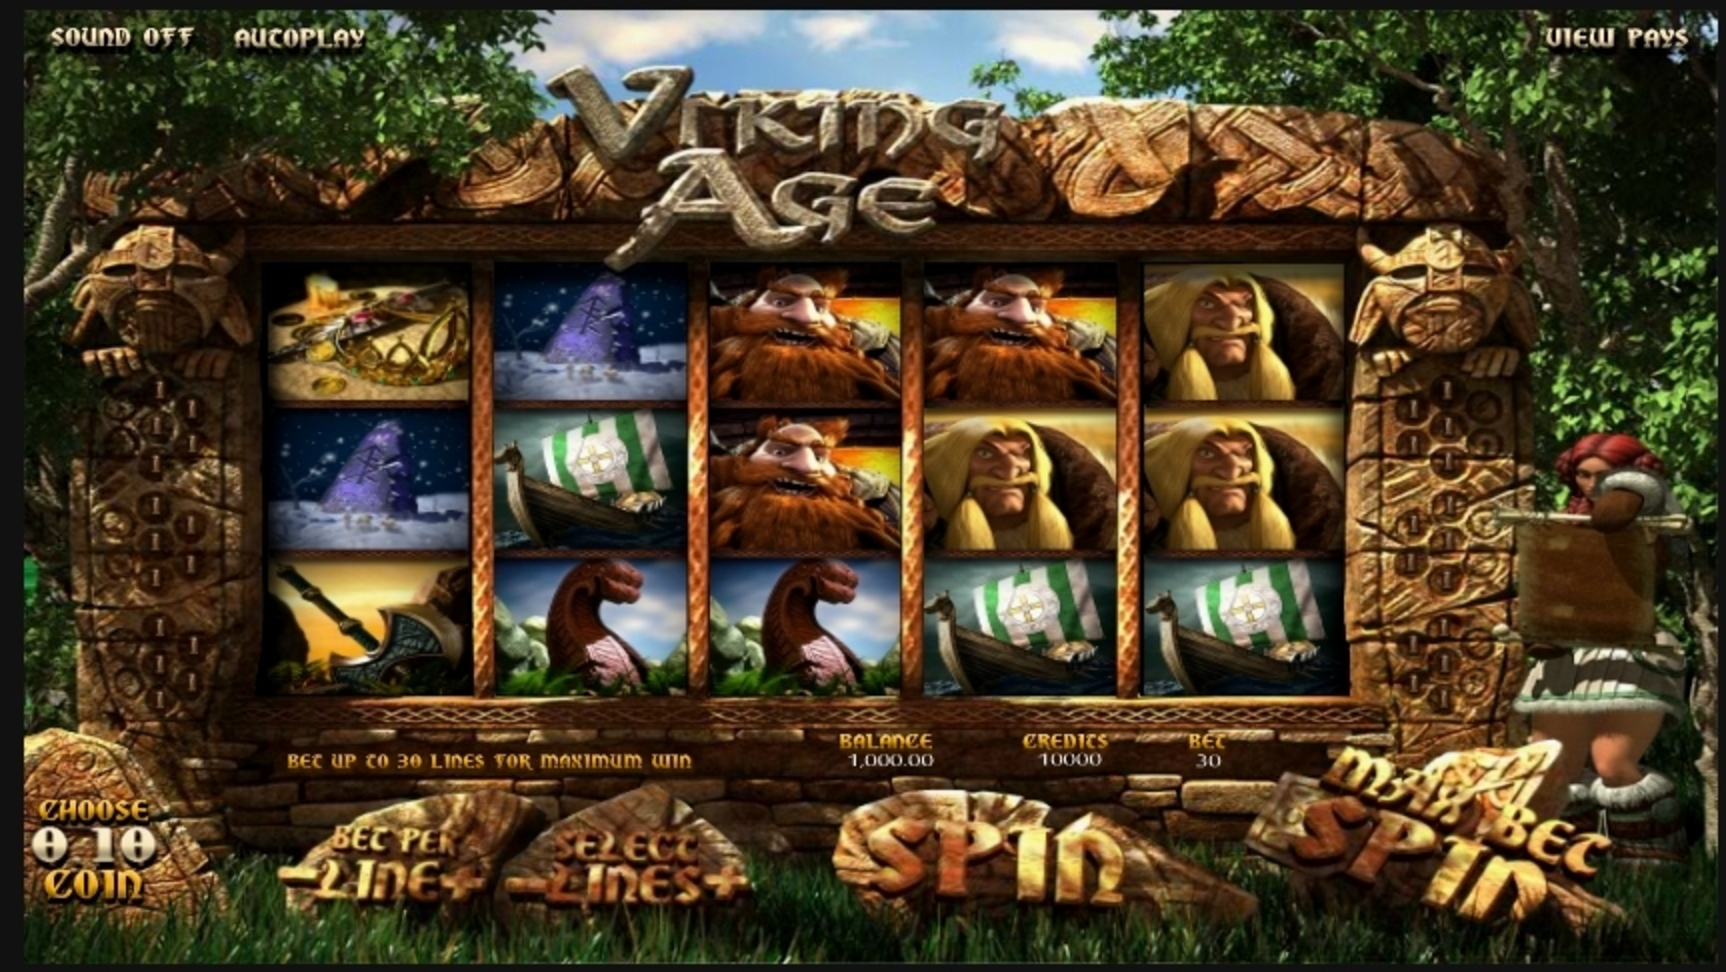 Reels in Viking Age Slot Game by Betsoft